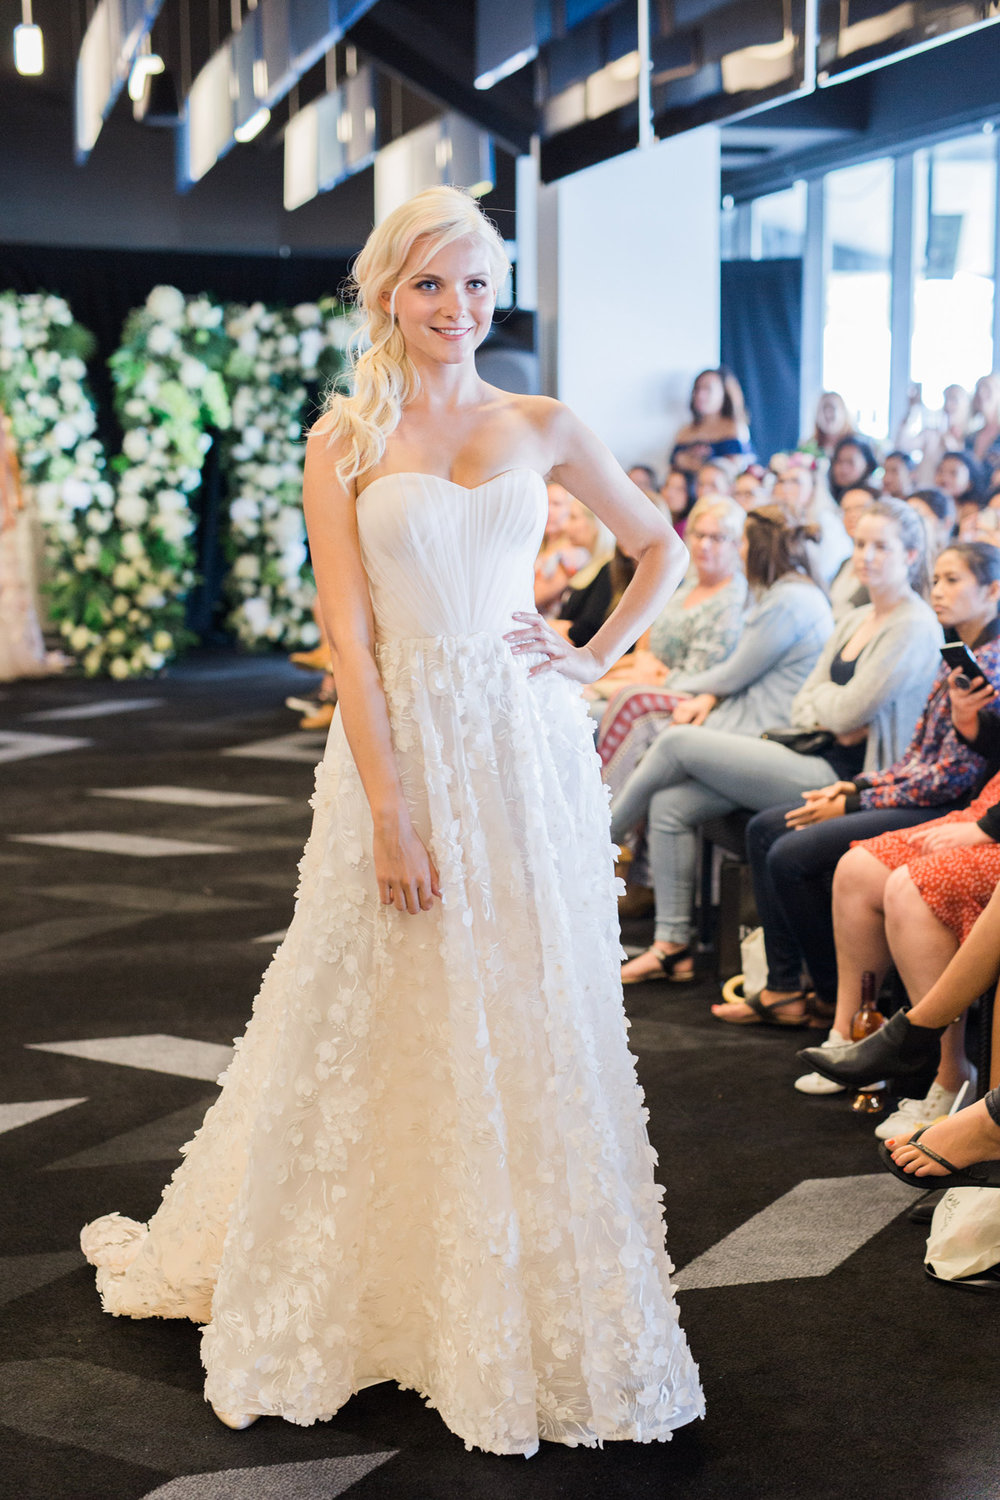 Love-Wedding-Festival-Sydney-Wedding-Gown-Angela-Osagie-24.jpg